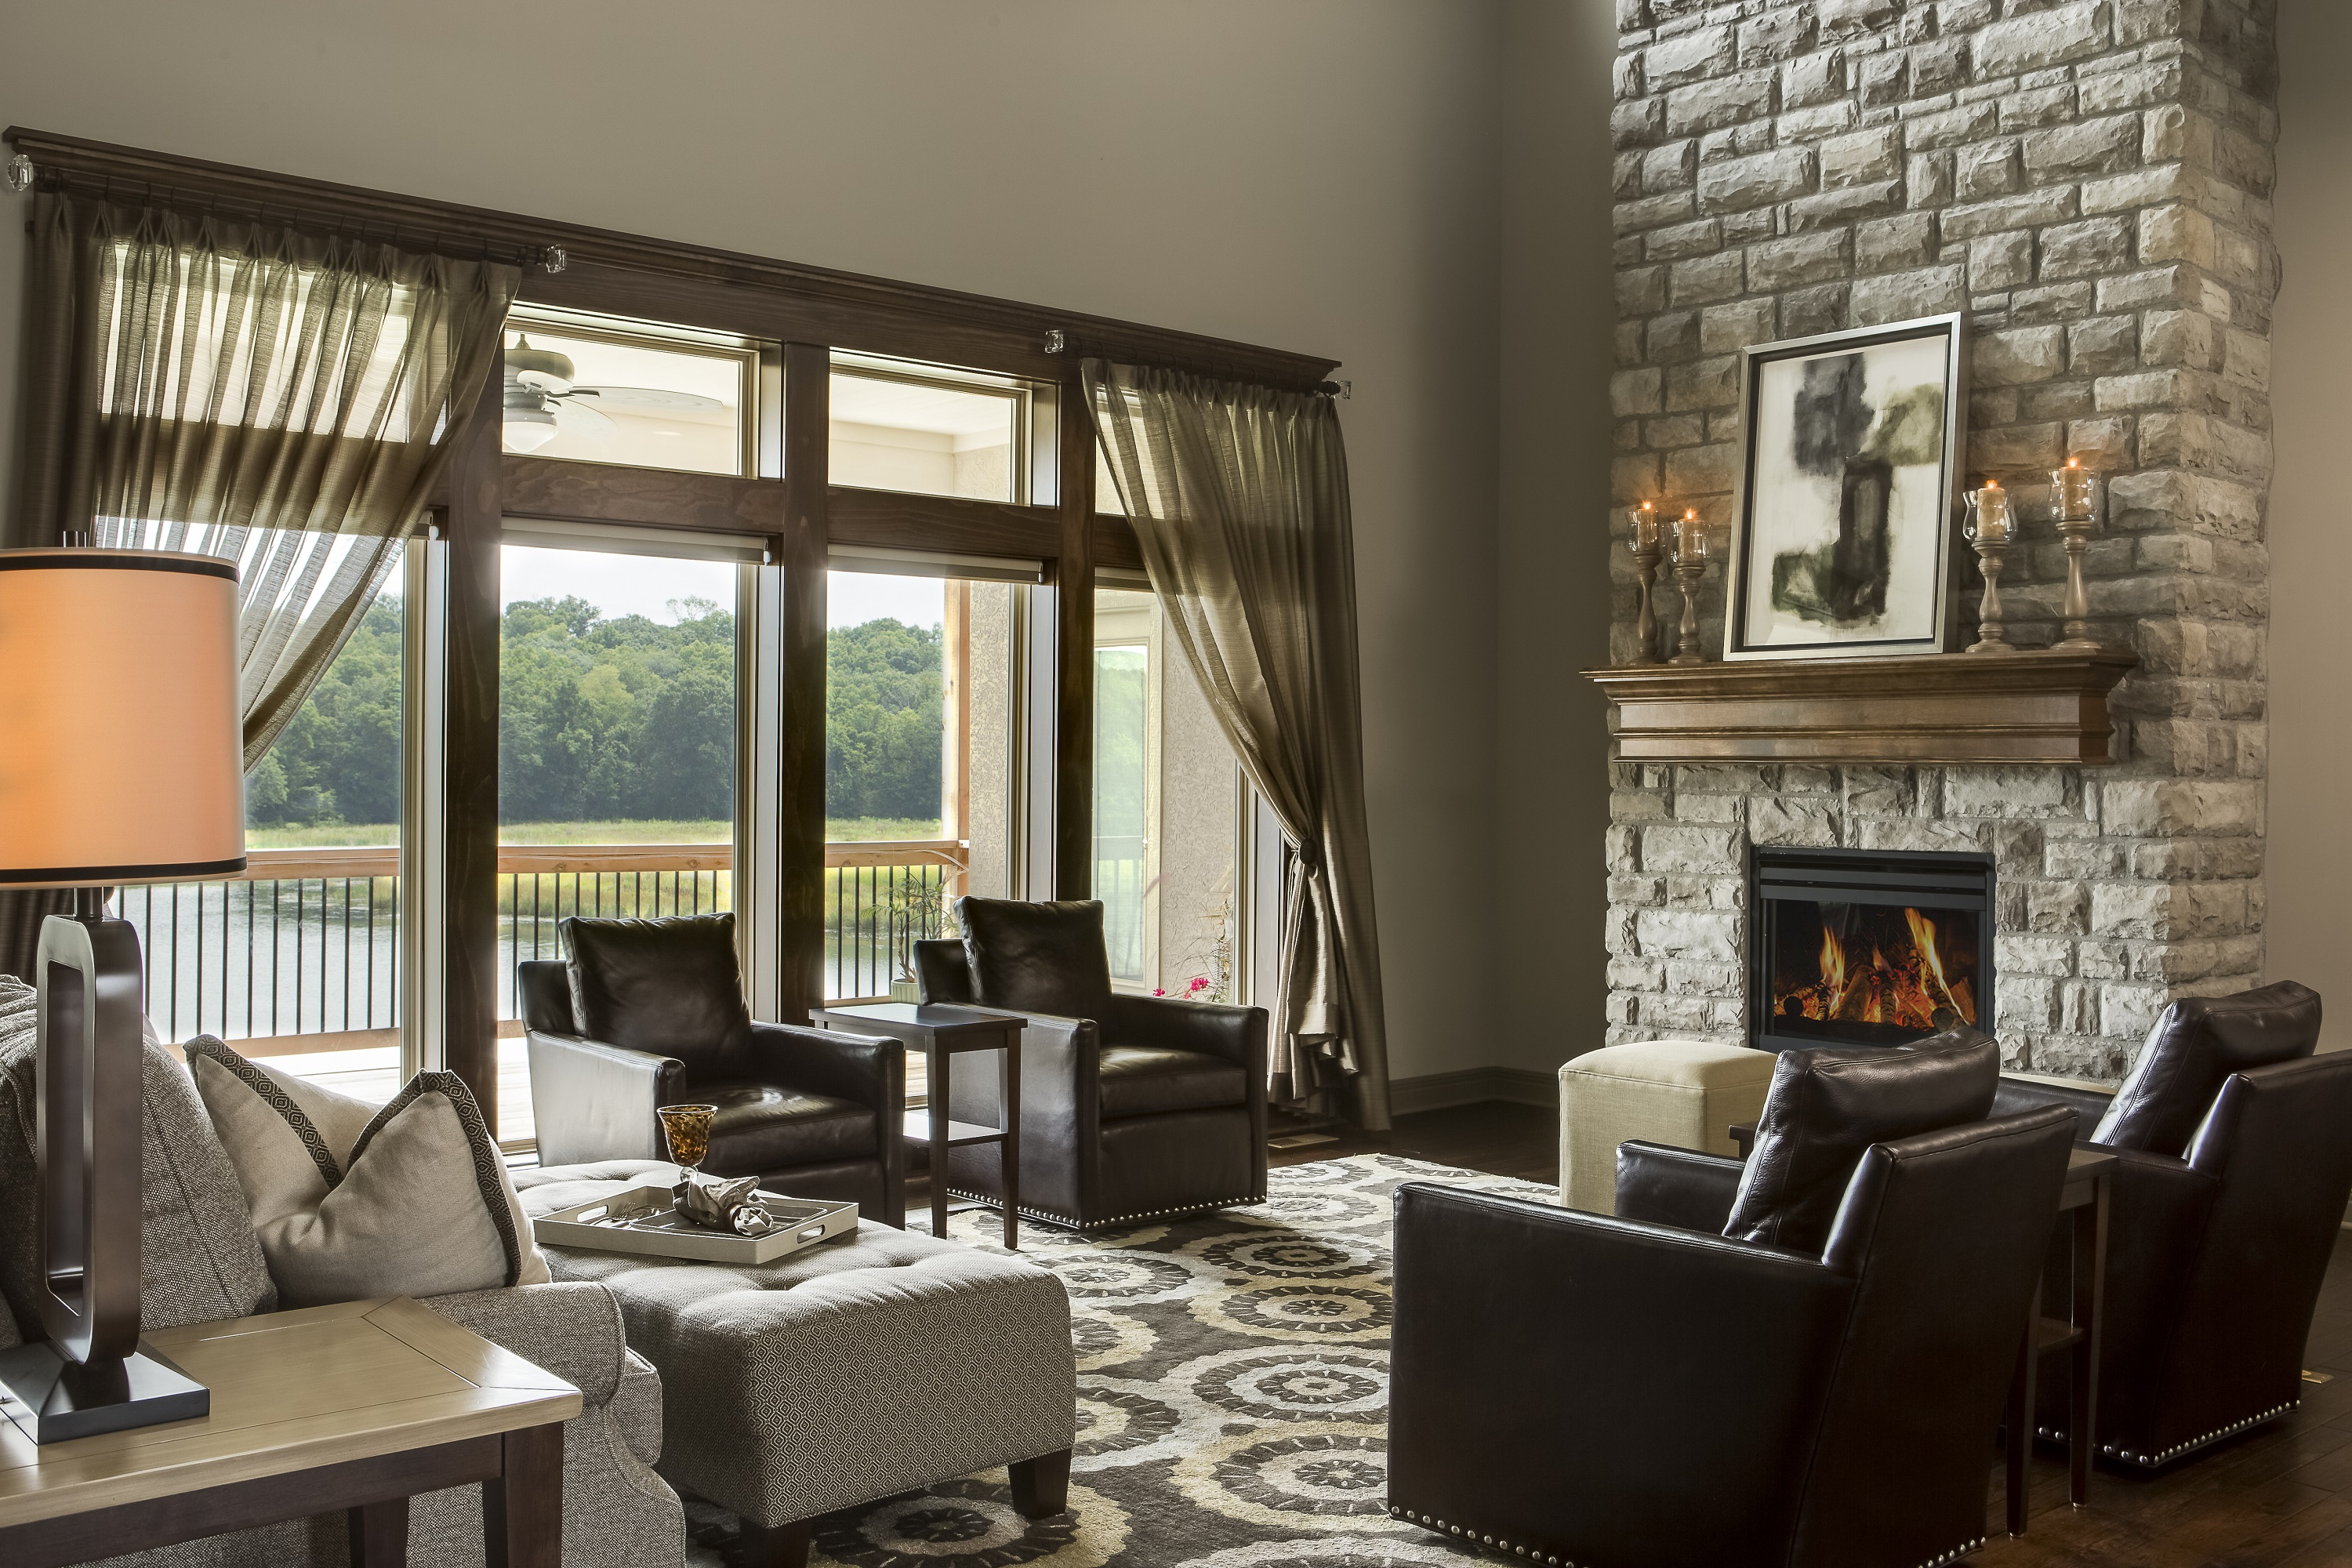 Ordinaire Stillwell Great Room Design Connection Inc Arlene Ladegaard Kansas City  Interior Designer